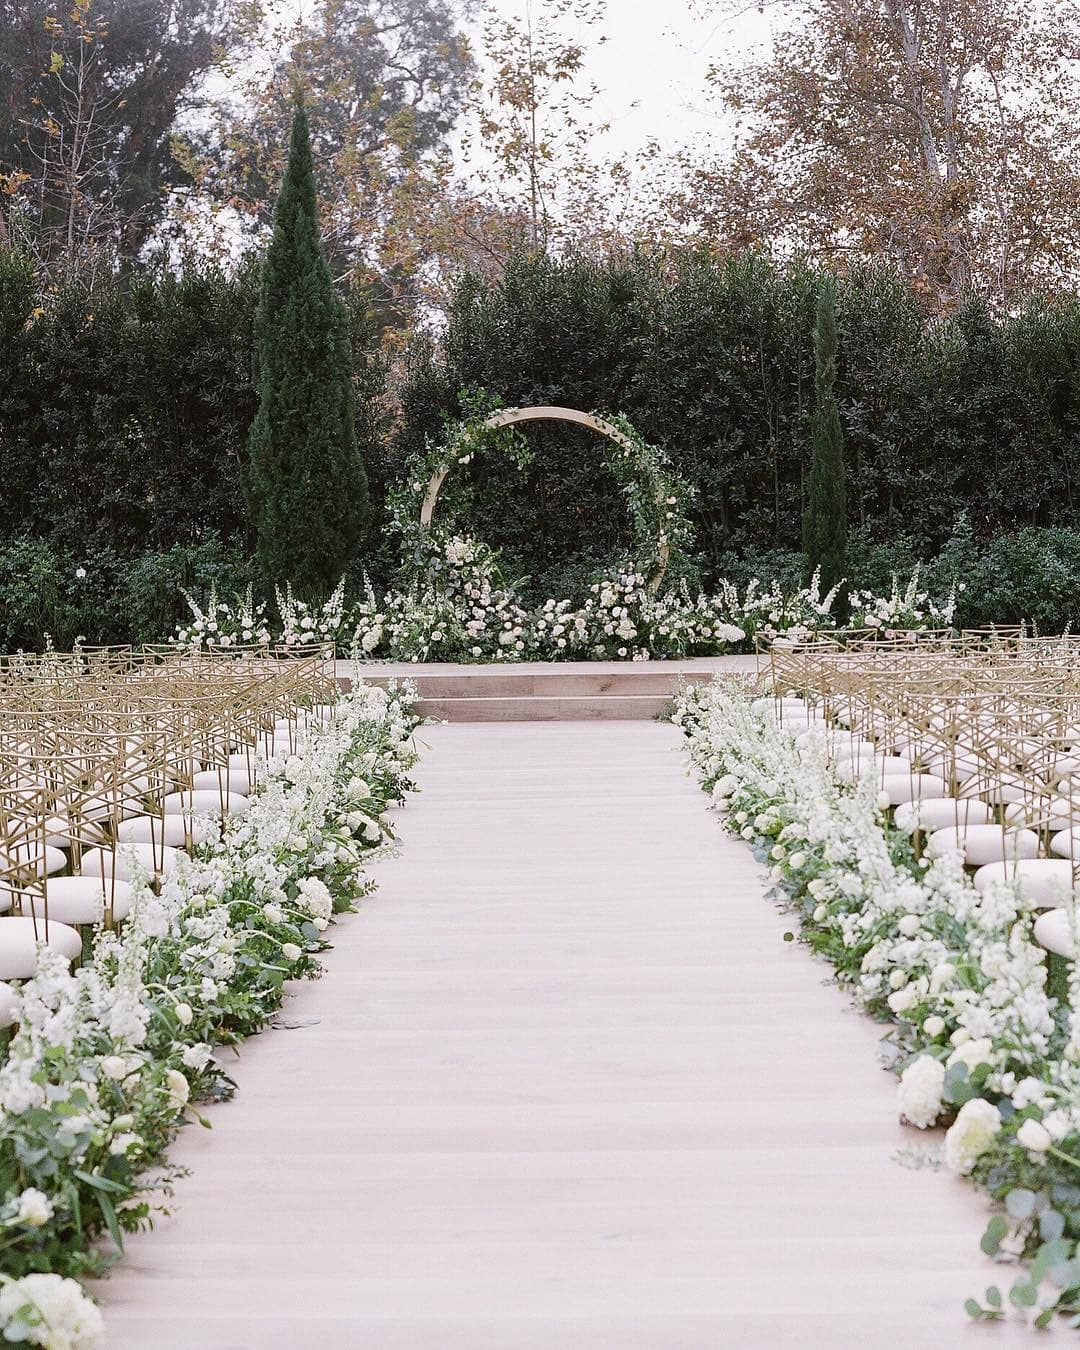 Unique Outdoor Wedding Ceremony Ideas: This Elegant Ceremony Will Be Sure To Take Guest's Breath